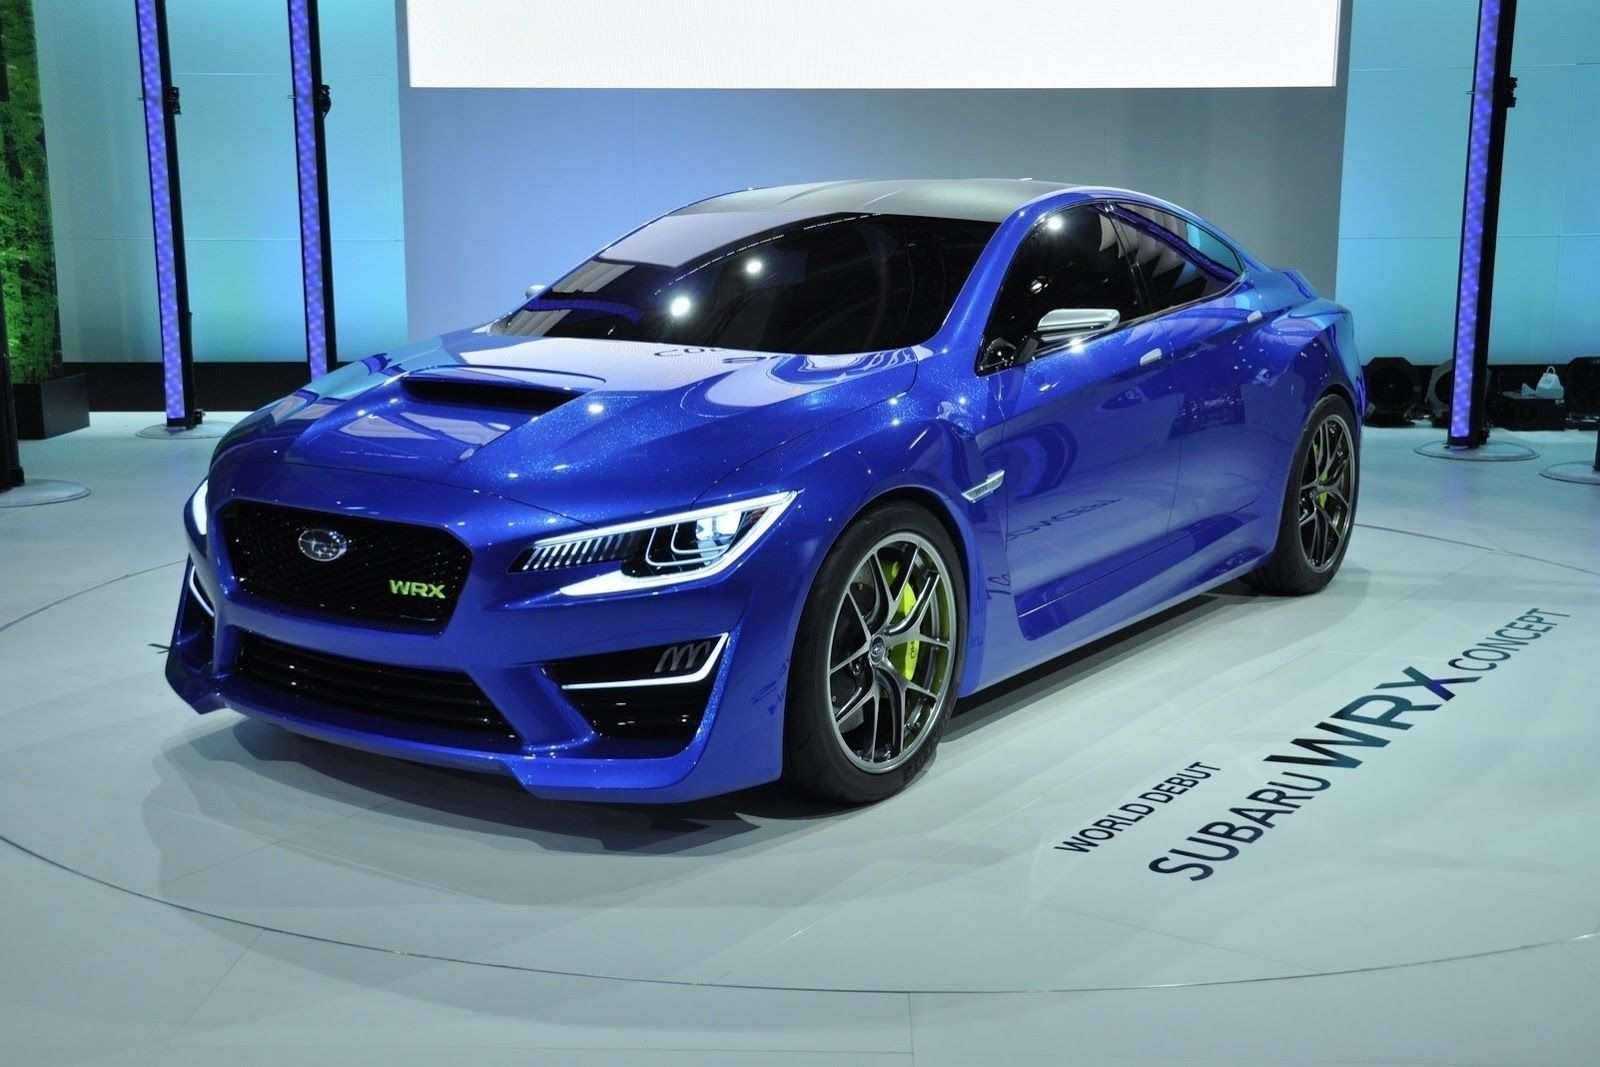 39 Gallery of 2019 Subaru Sti Price Concept by 2019 Subaru Sti Price